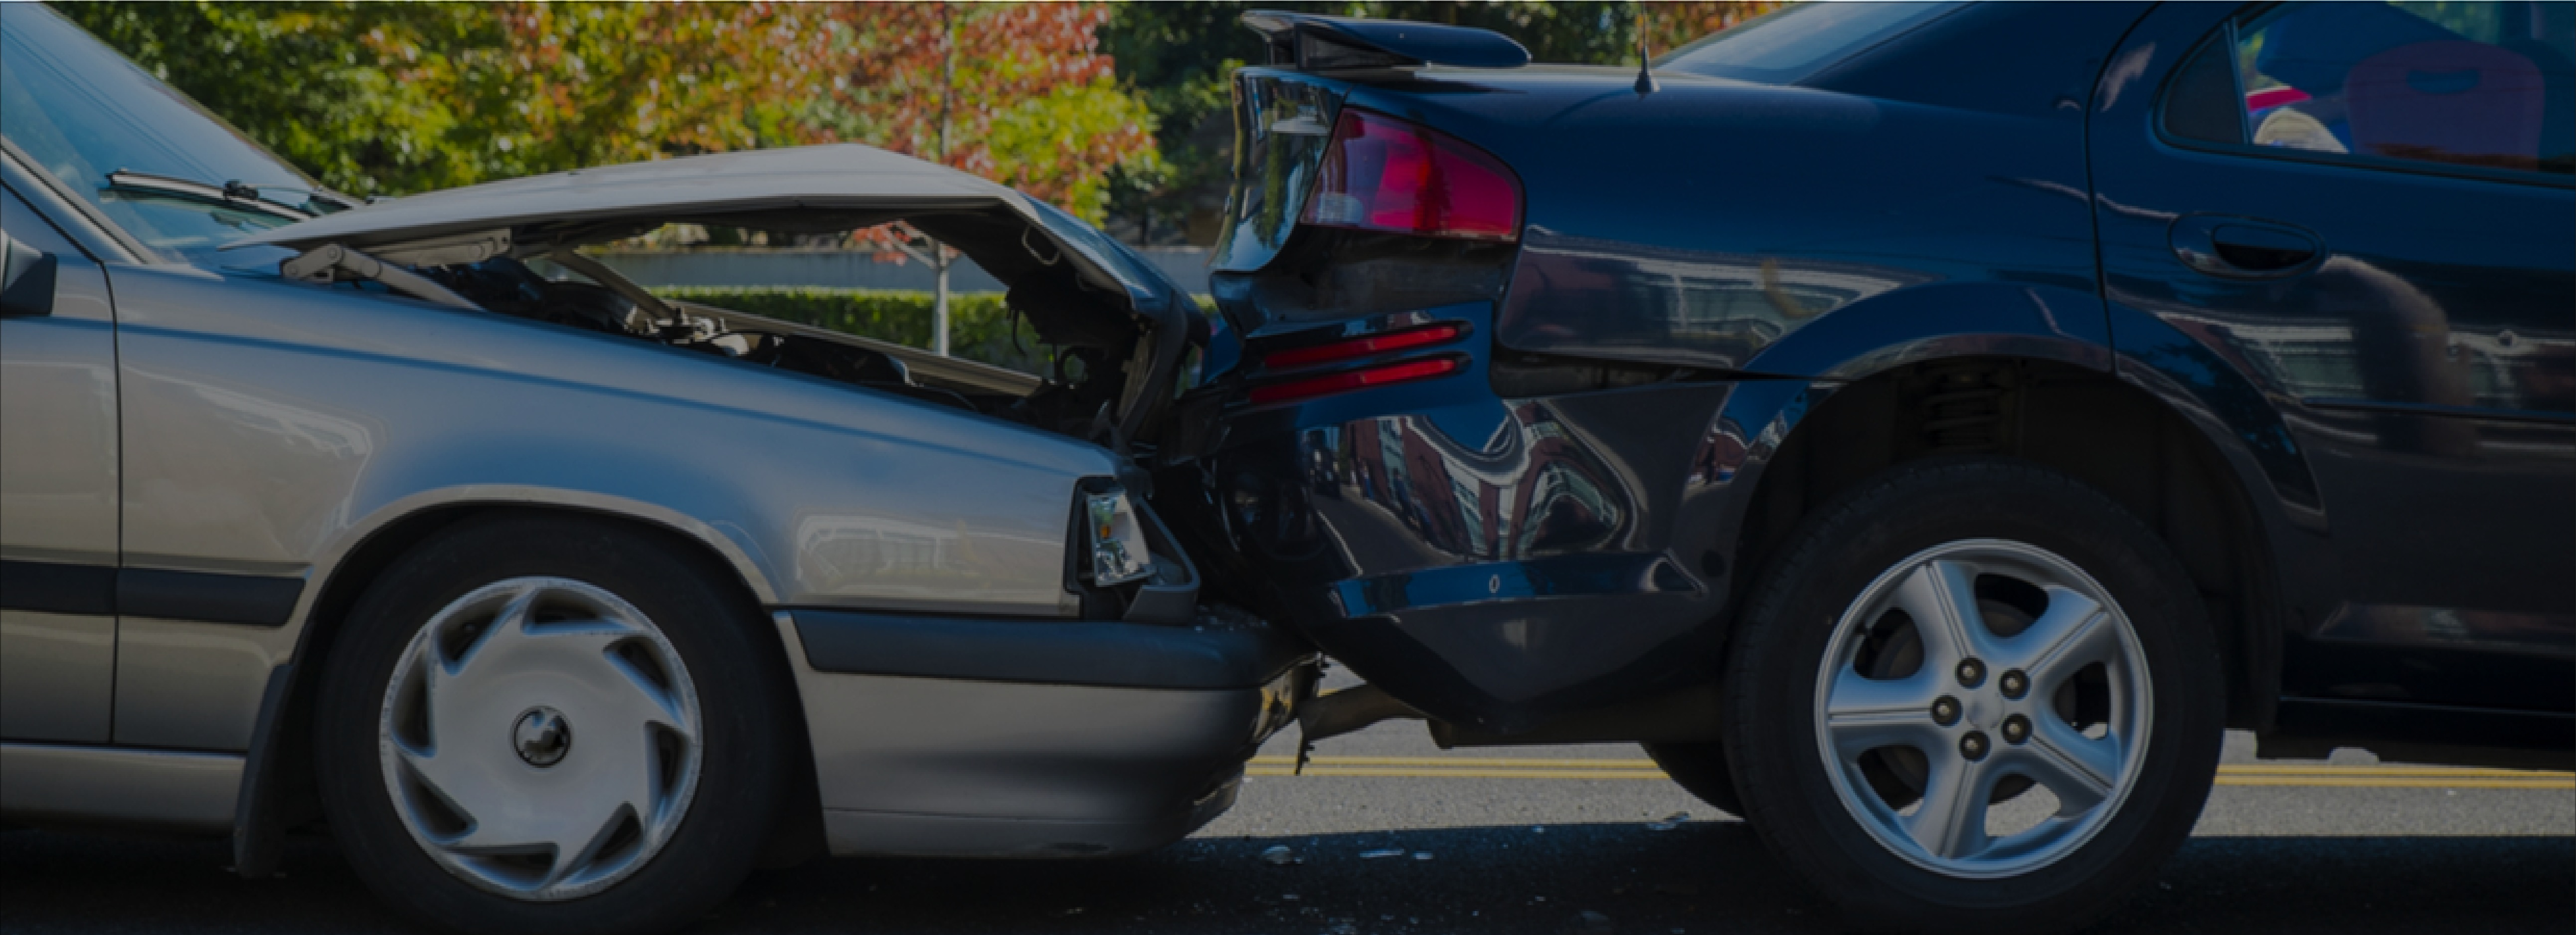 Car Accident Lawyers in Bergen County